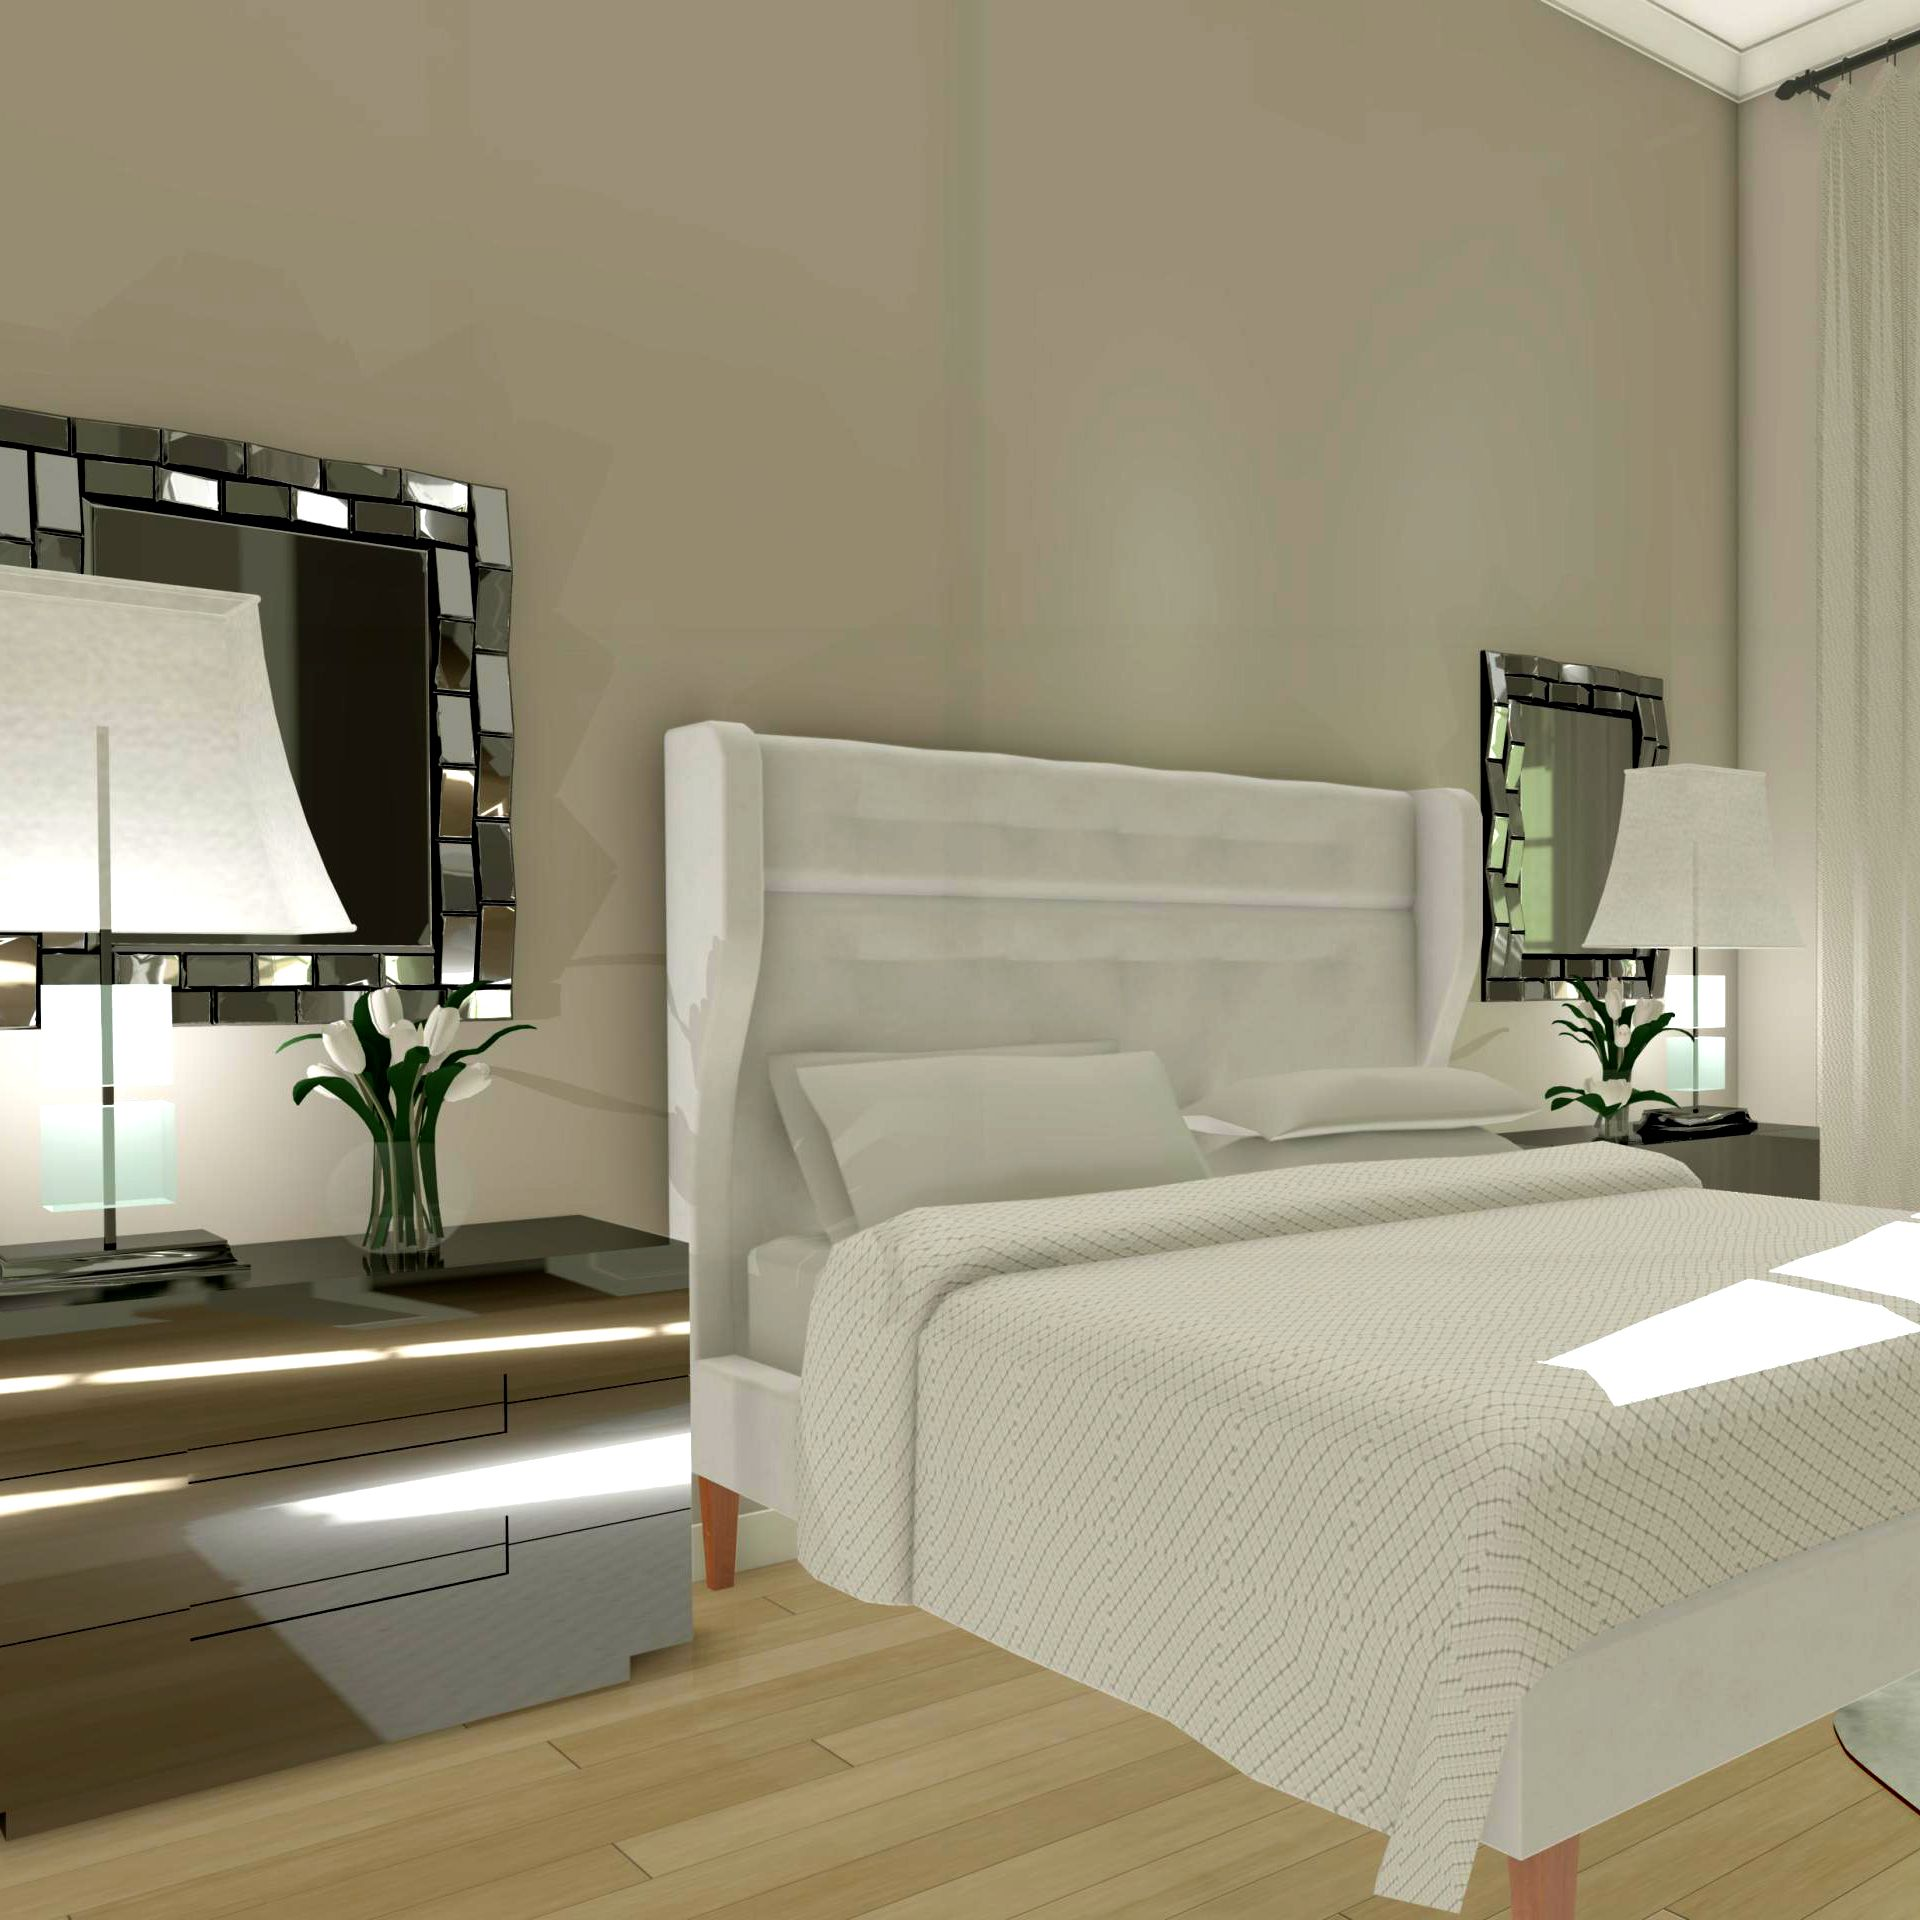 Physically Based Rendering Technique Of A Bedroom Created In Chief